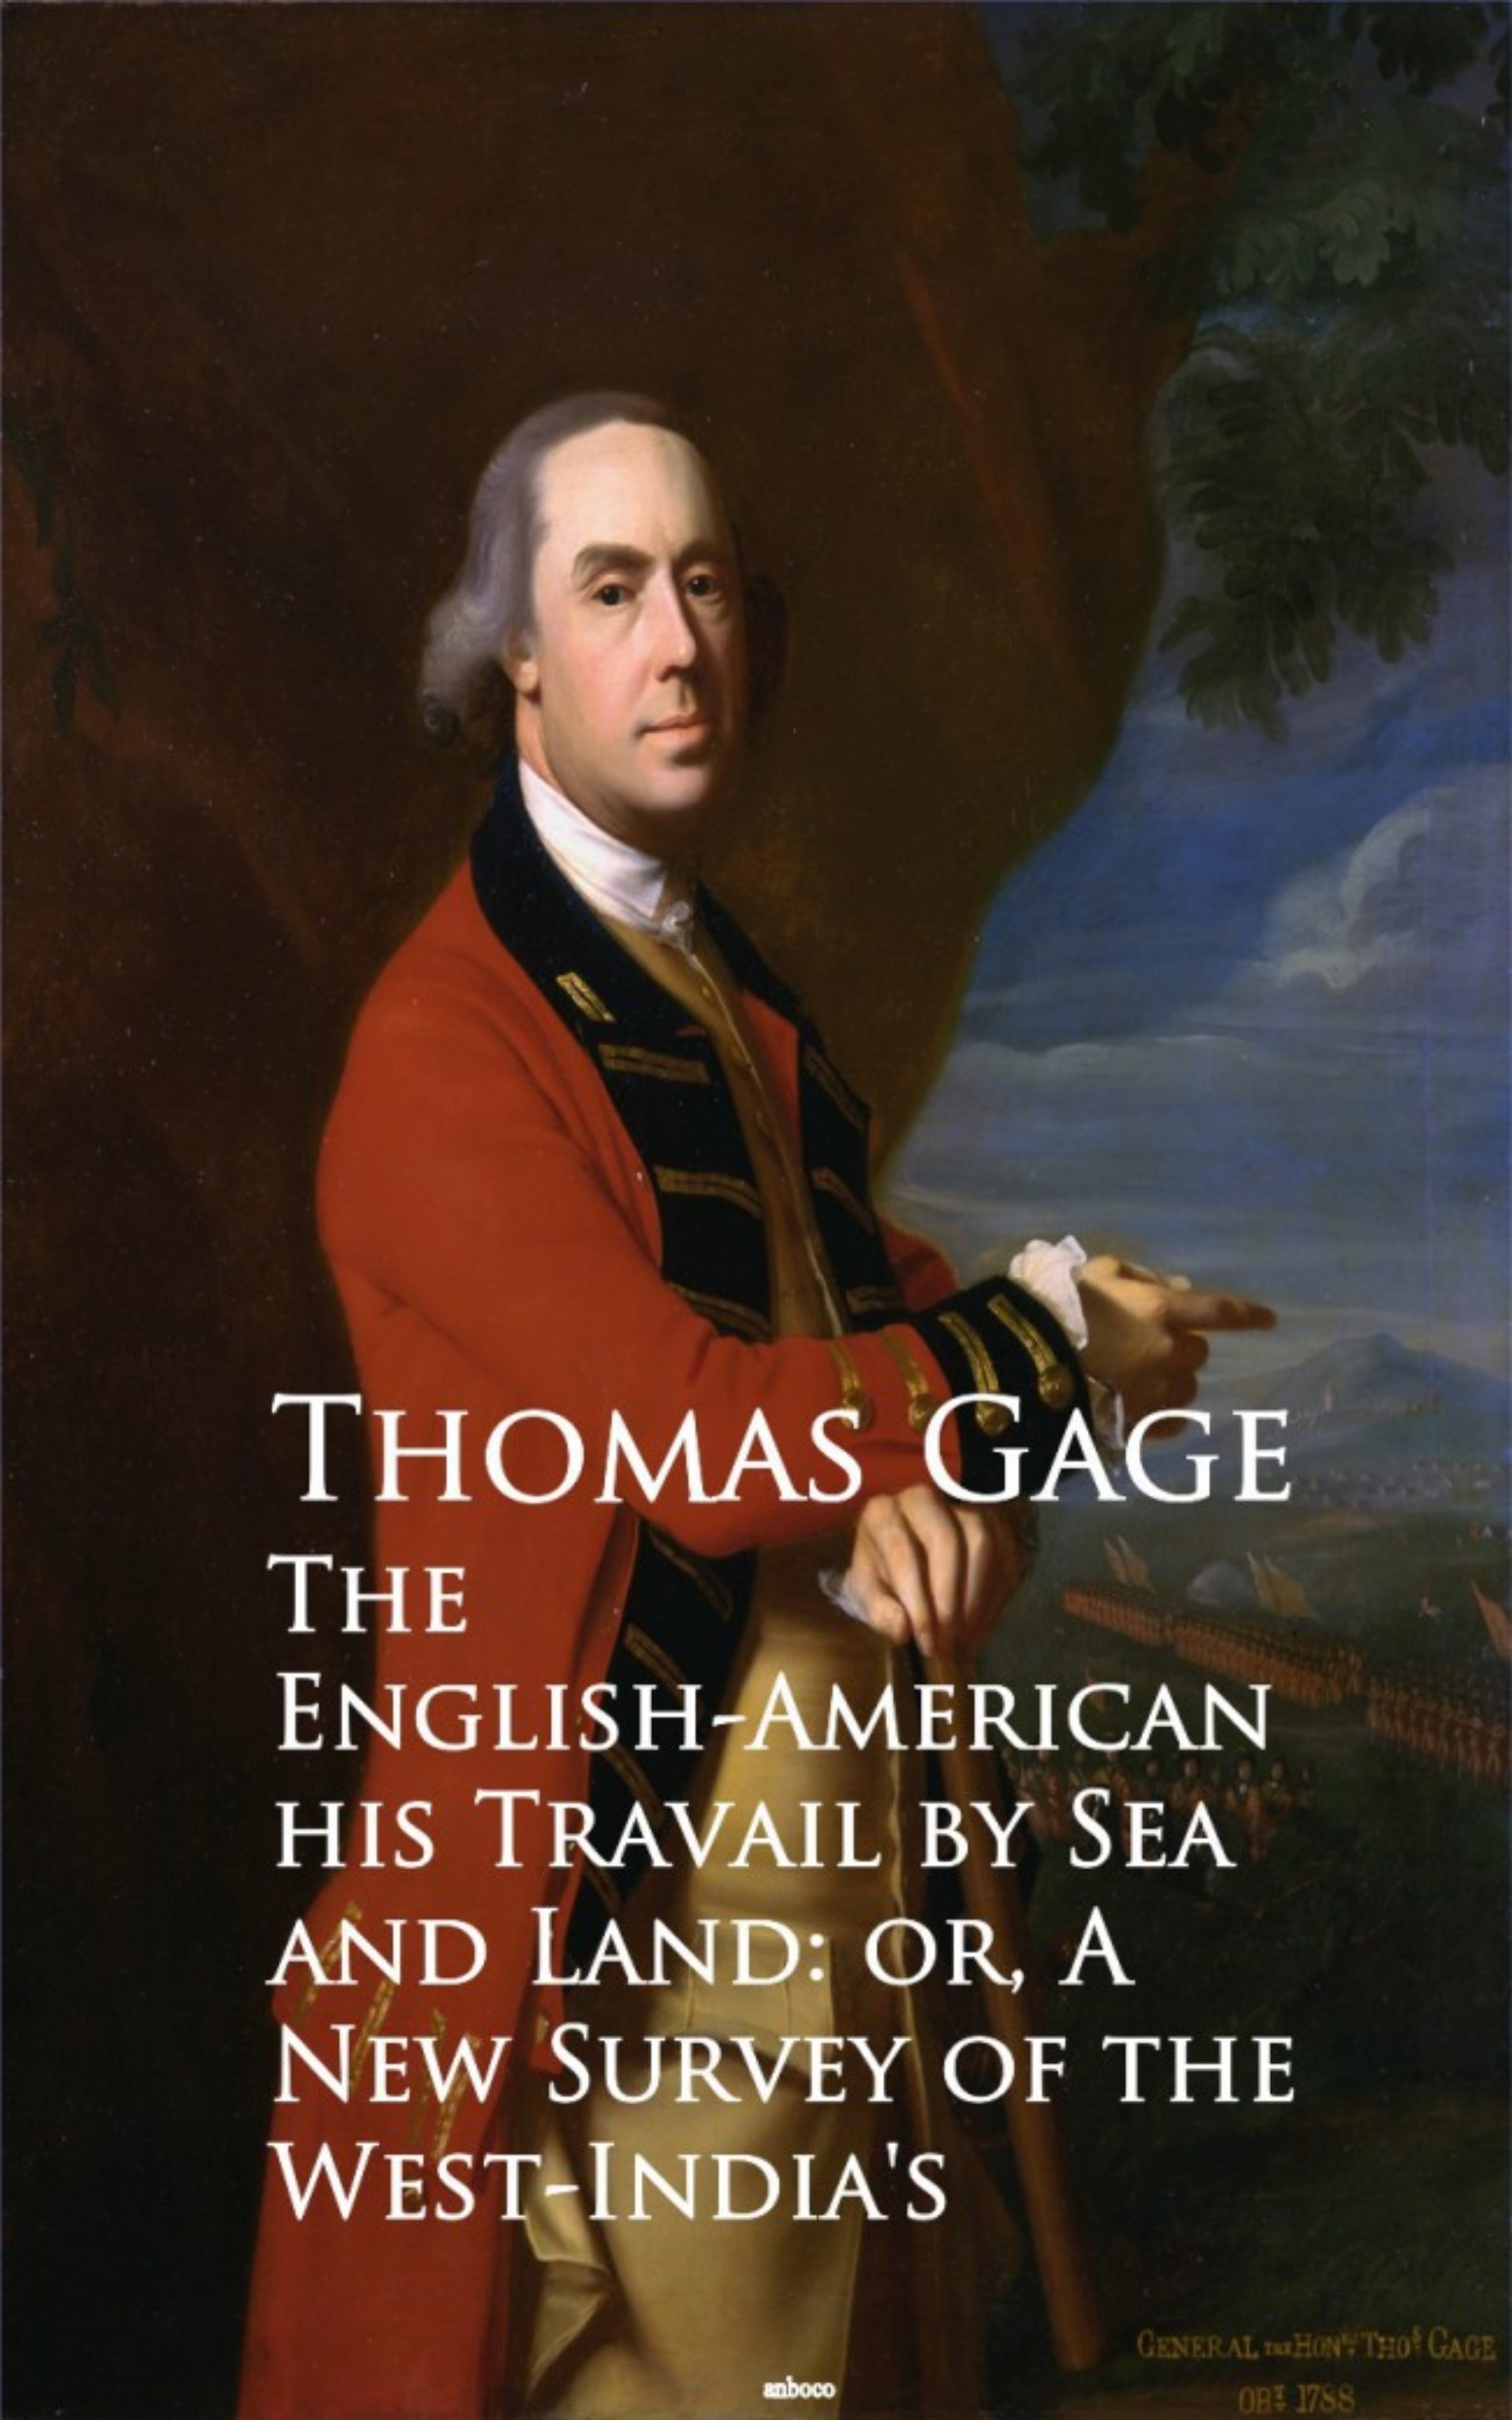 Thomas Gage The English-American - Travel by Sea and Land or A New Survey of the West-India's